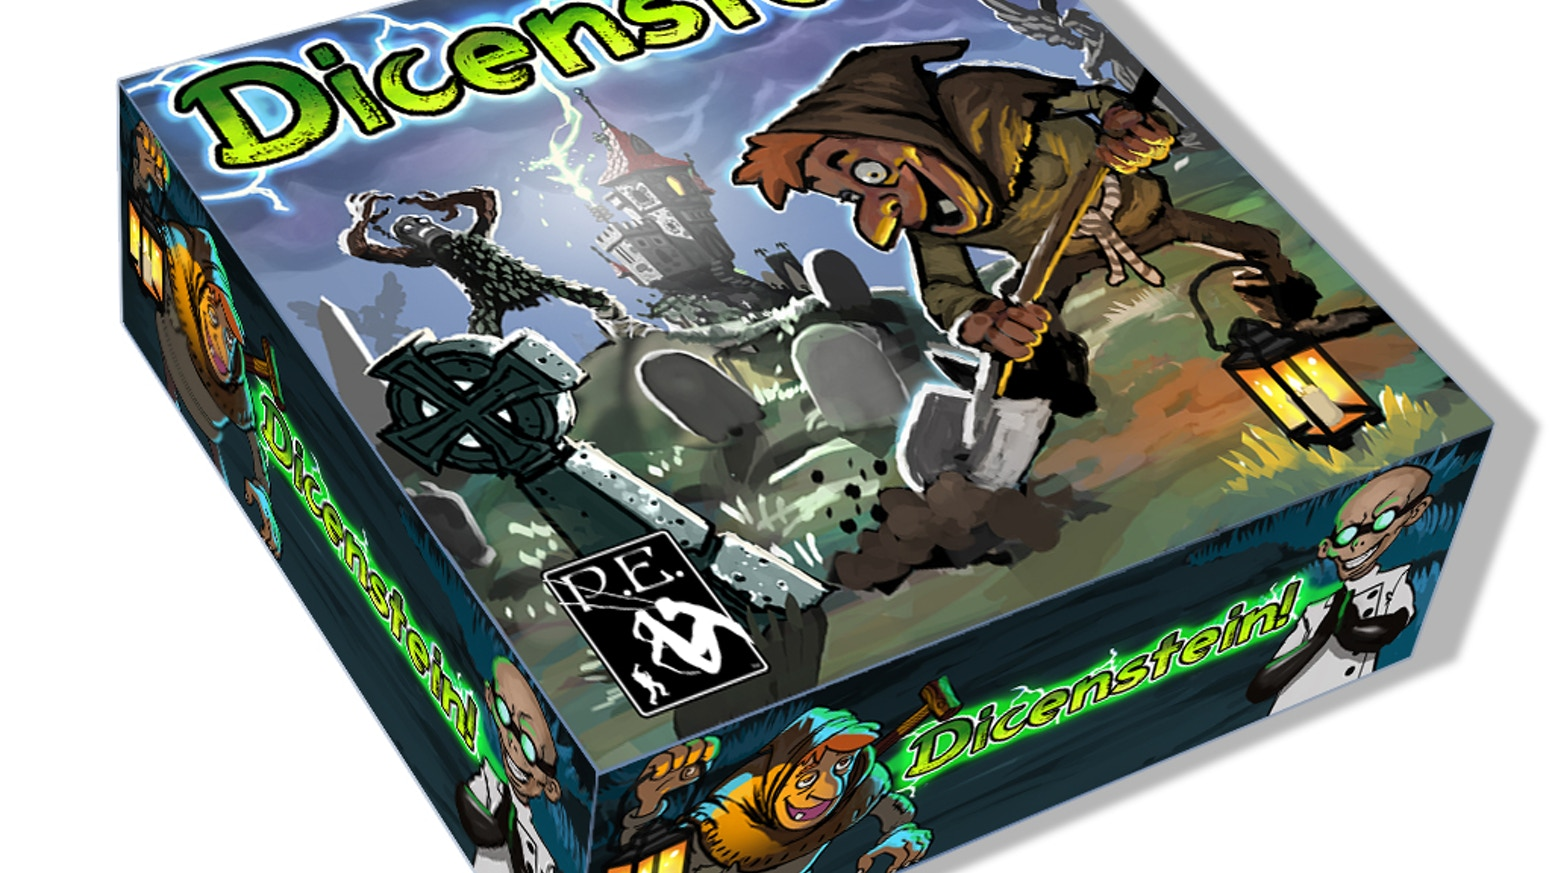 Become a mad scientist, digging through graveyards to stitch together wacky hybrid monsters and send them to battle!